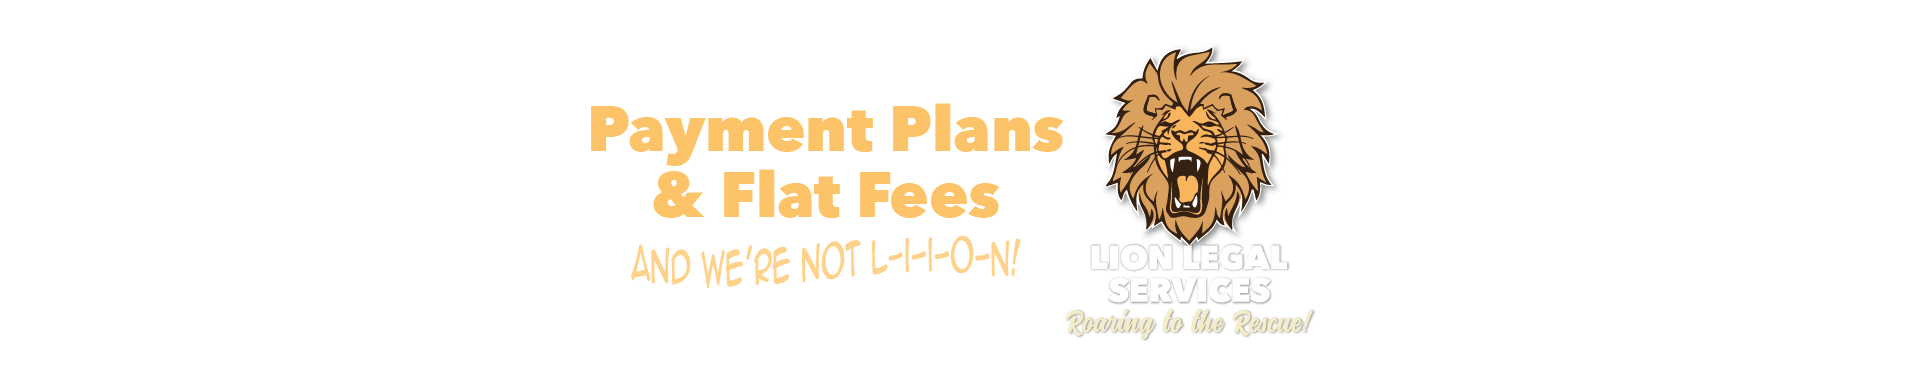 Lion Legal Services banner: Payment plans and flat fees, and we're not L-I-O-N!